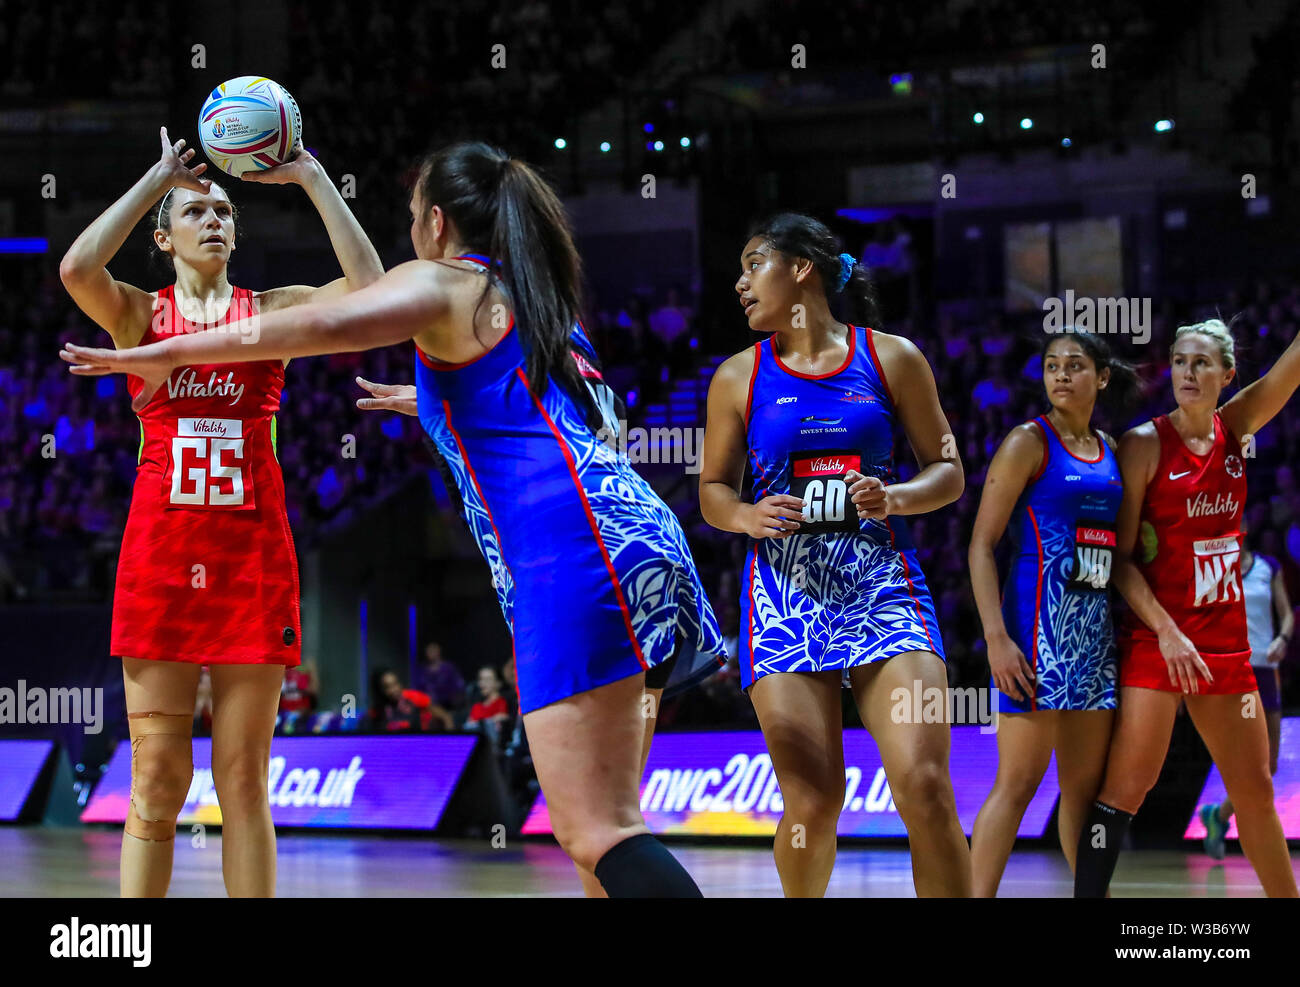 England's Joanne Harten during the Netball World Cup match at the M&S Bank Arena, Liverpool. - Stock Image